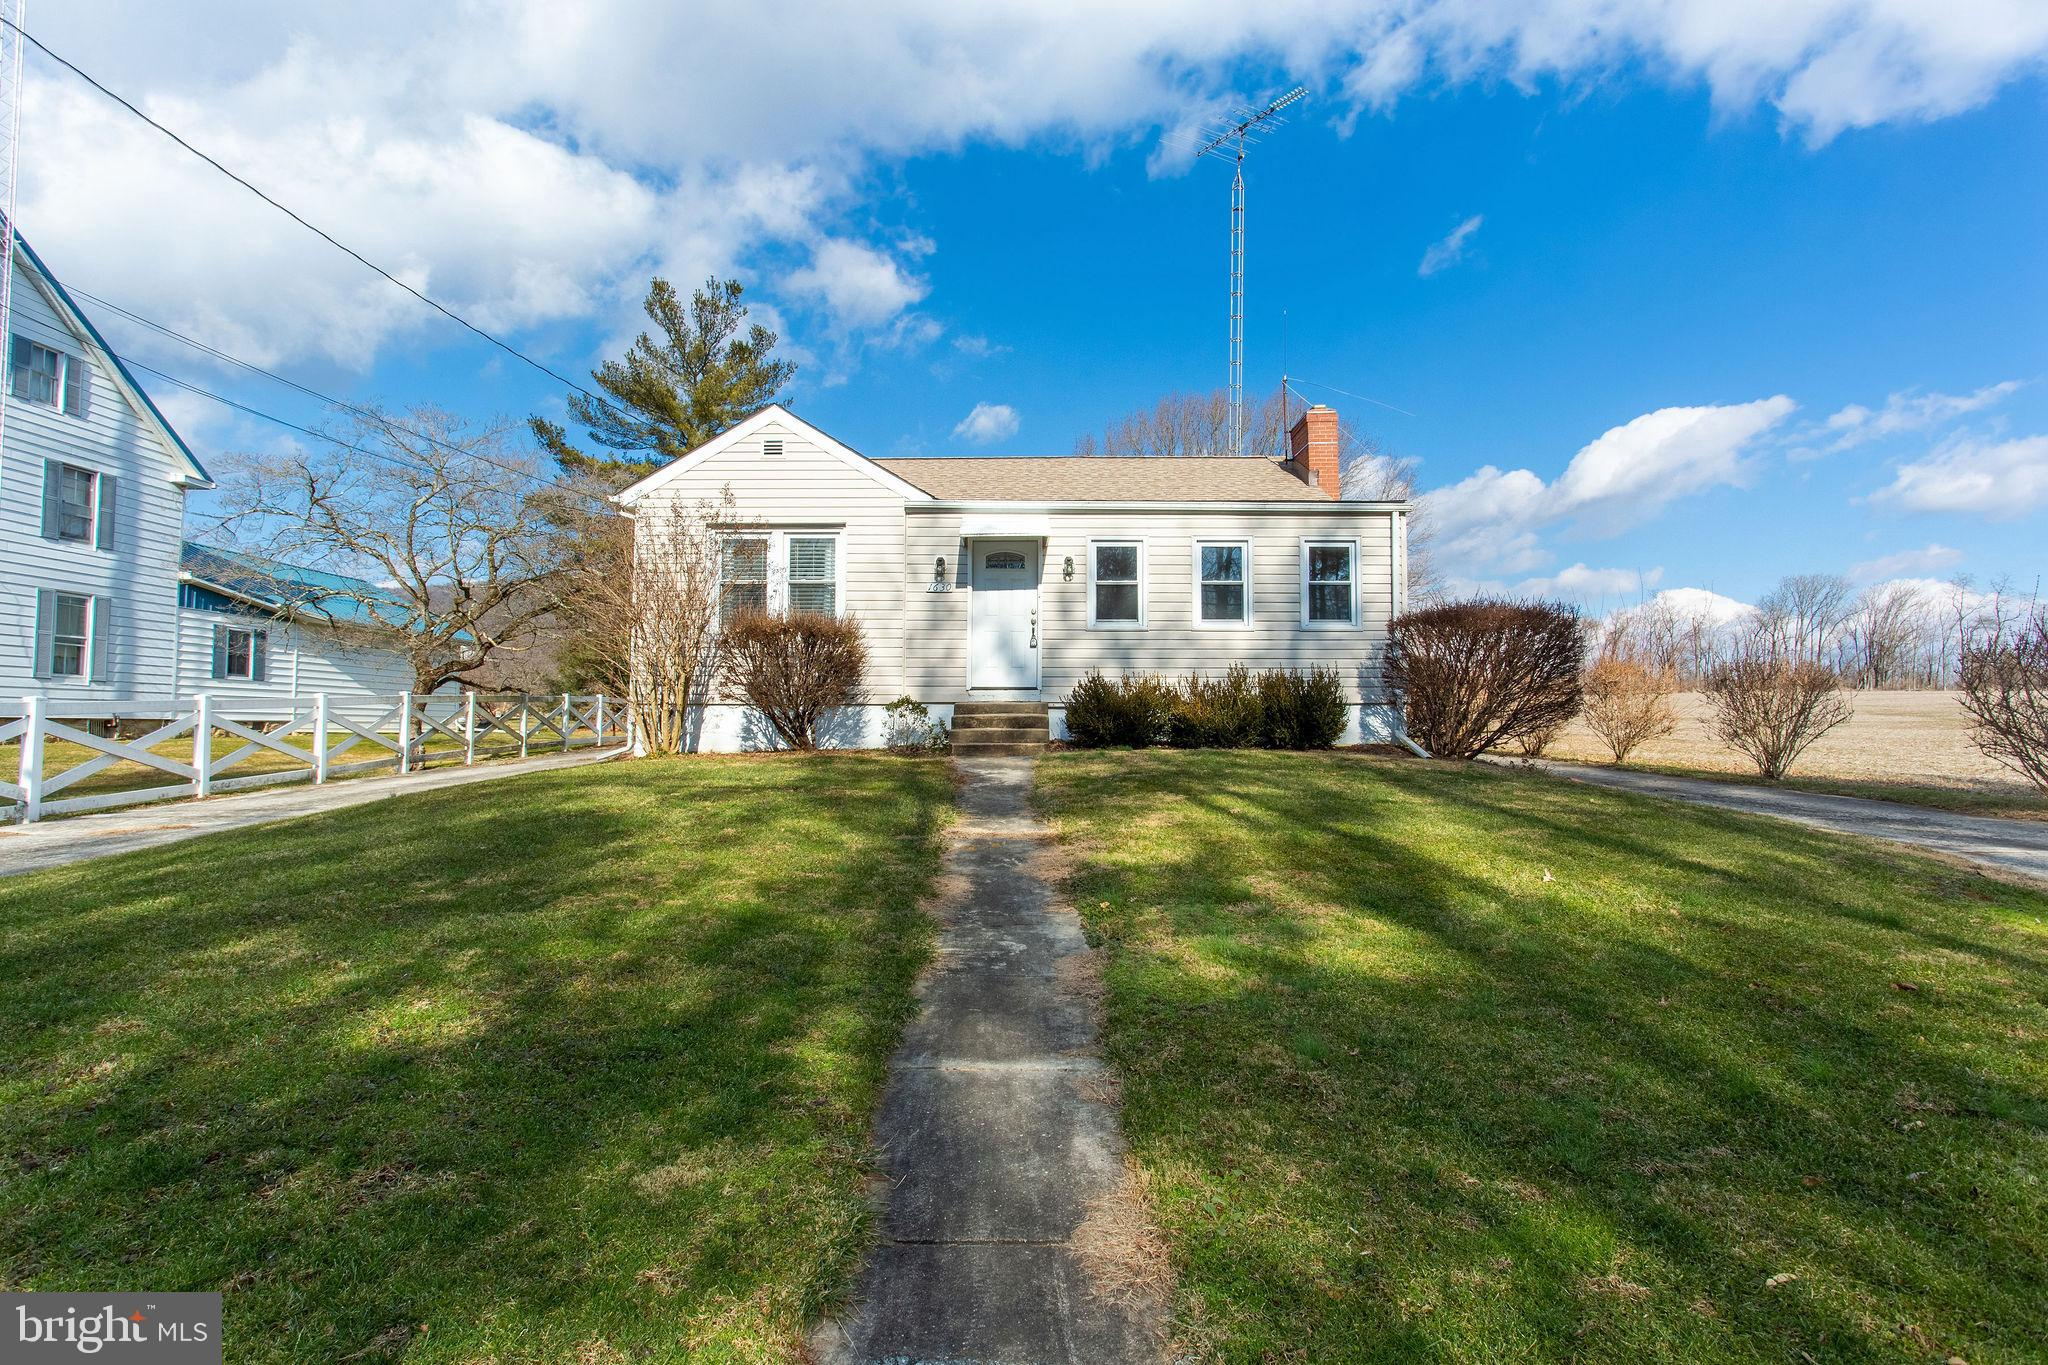 Adorable cottage in the Middletown Valley with gorgeous mountain views! Situated on almost half an acre, this detached home with four bedrooms and one bath, boasts a large eat-in kitchen, living room with vaulted ceilings, and a separate den-space for virtual learning or working from home. One level living plus an enclosed three season porch perfect as a mud room. Enjoy your private views on the deck off the living room. Upgrades include a new heat pump in 2020 and a new roof in 2017. Everything and more in the Middletown school district!